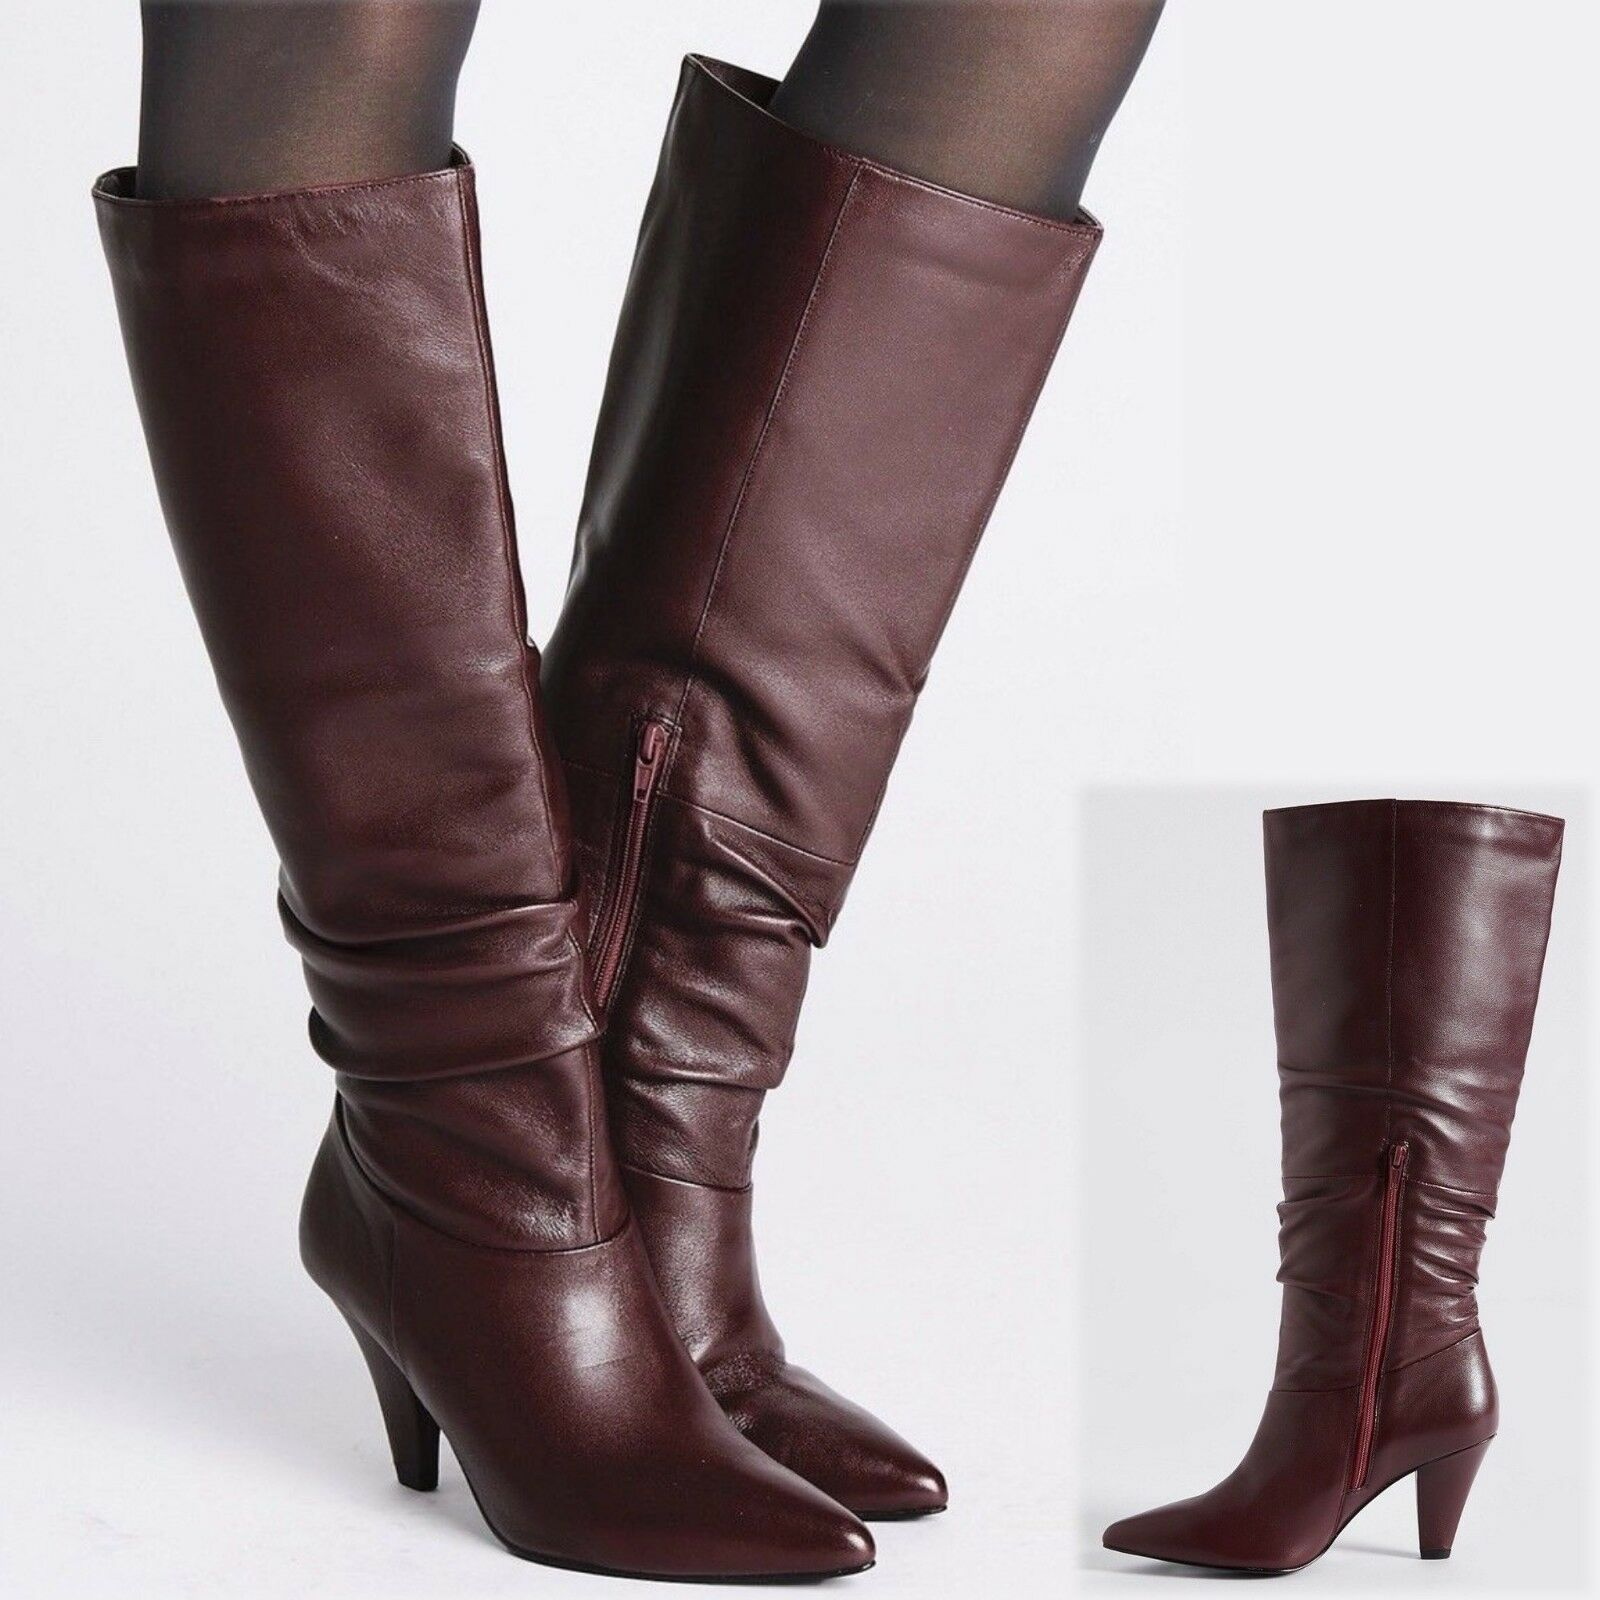 M&S Real LEATHER High Heel KNEE High BOOTS  Size 7  BERRY (rrp )